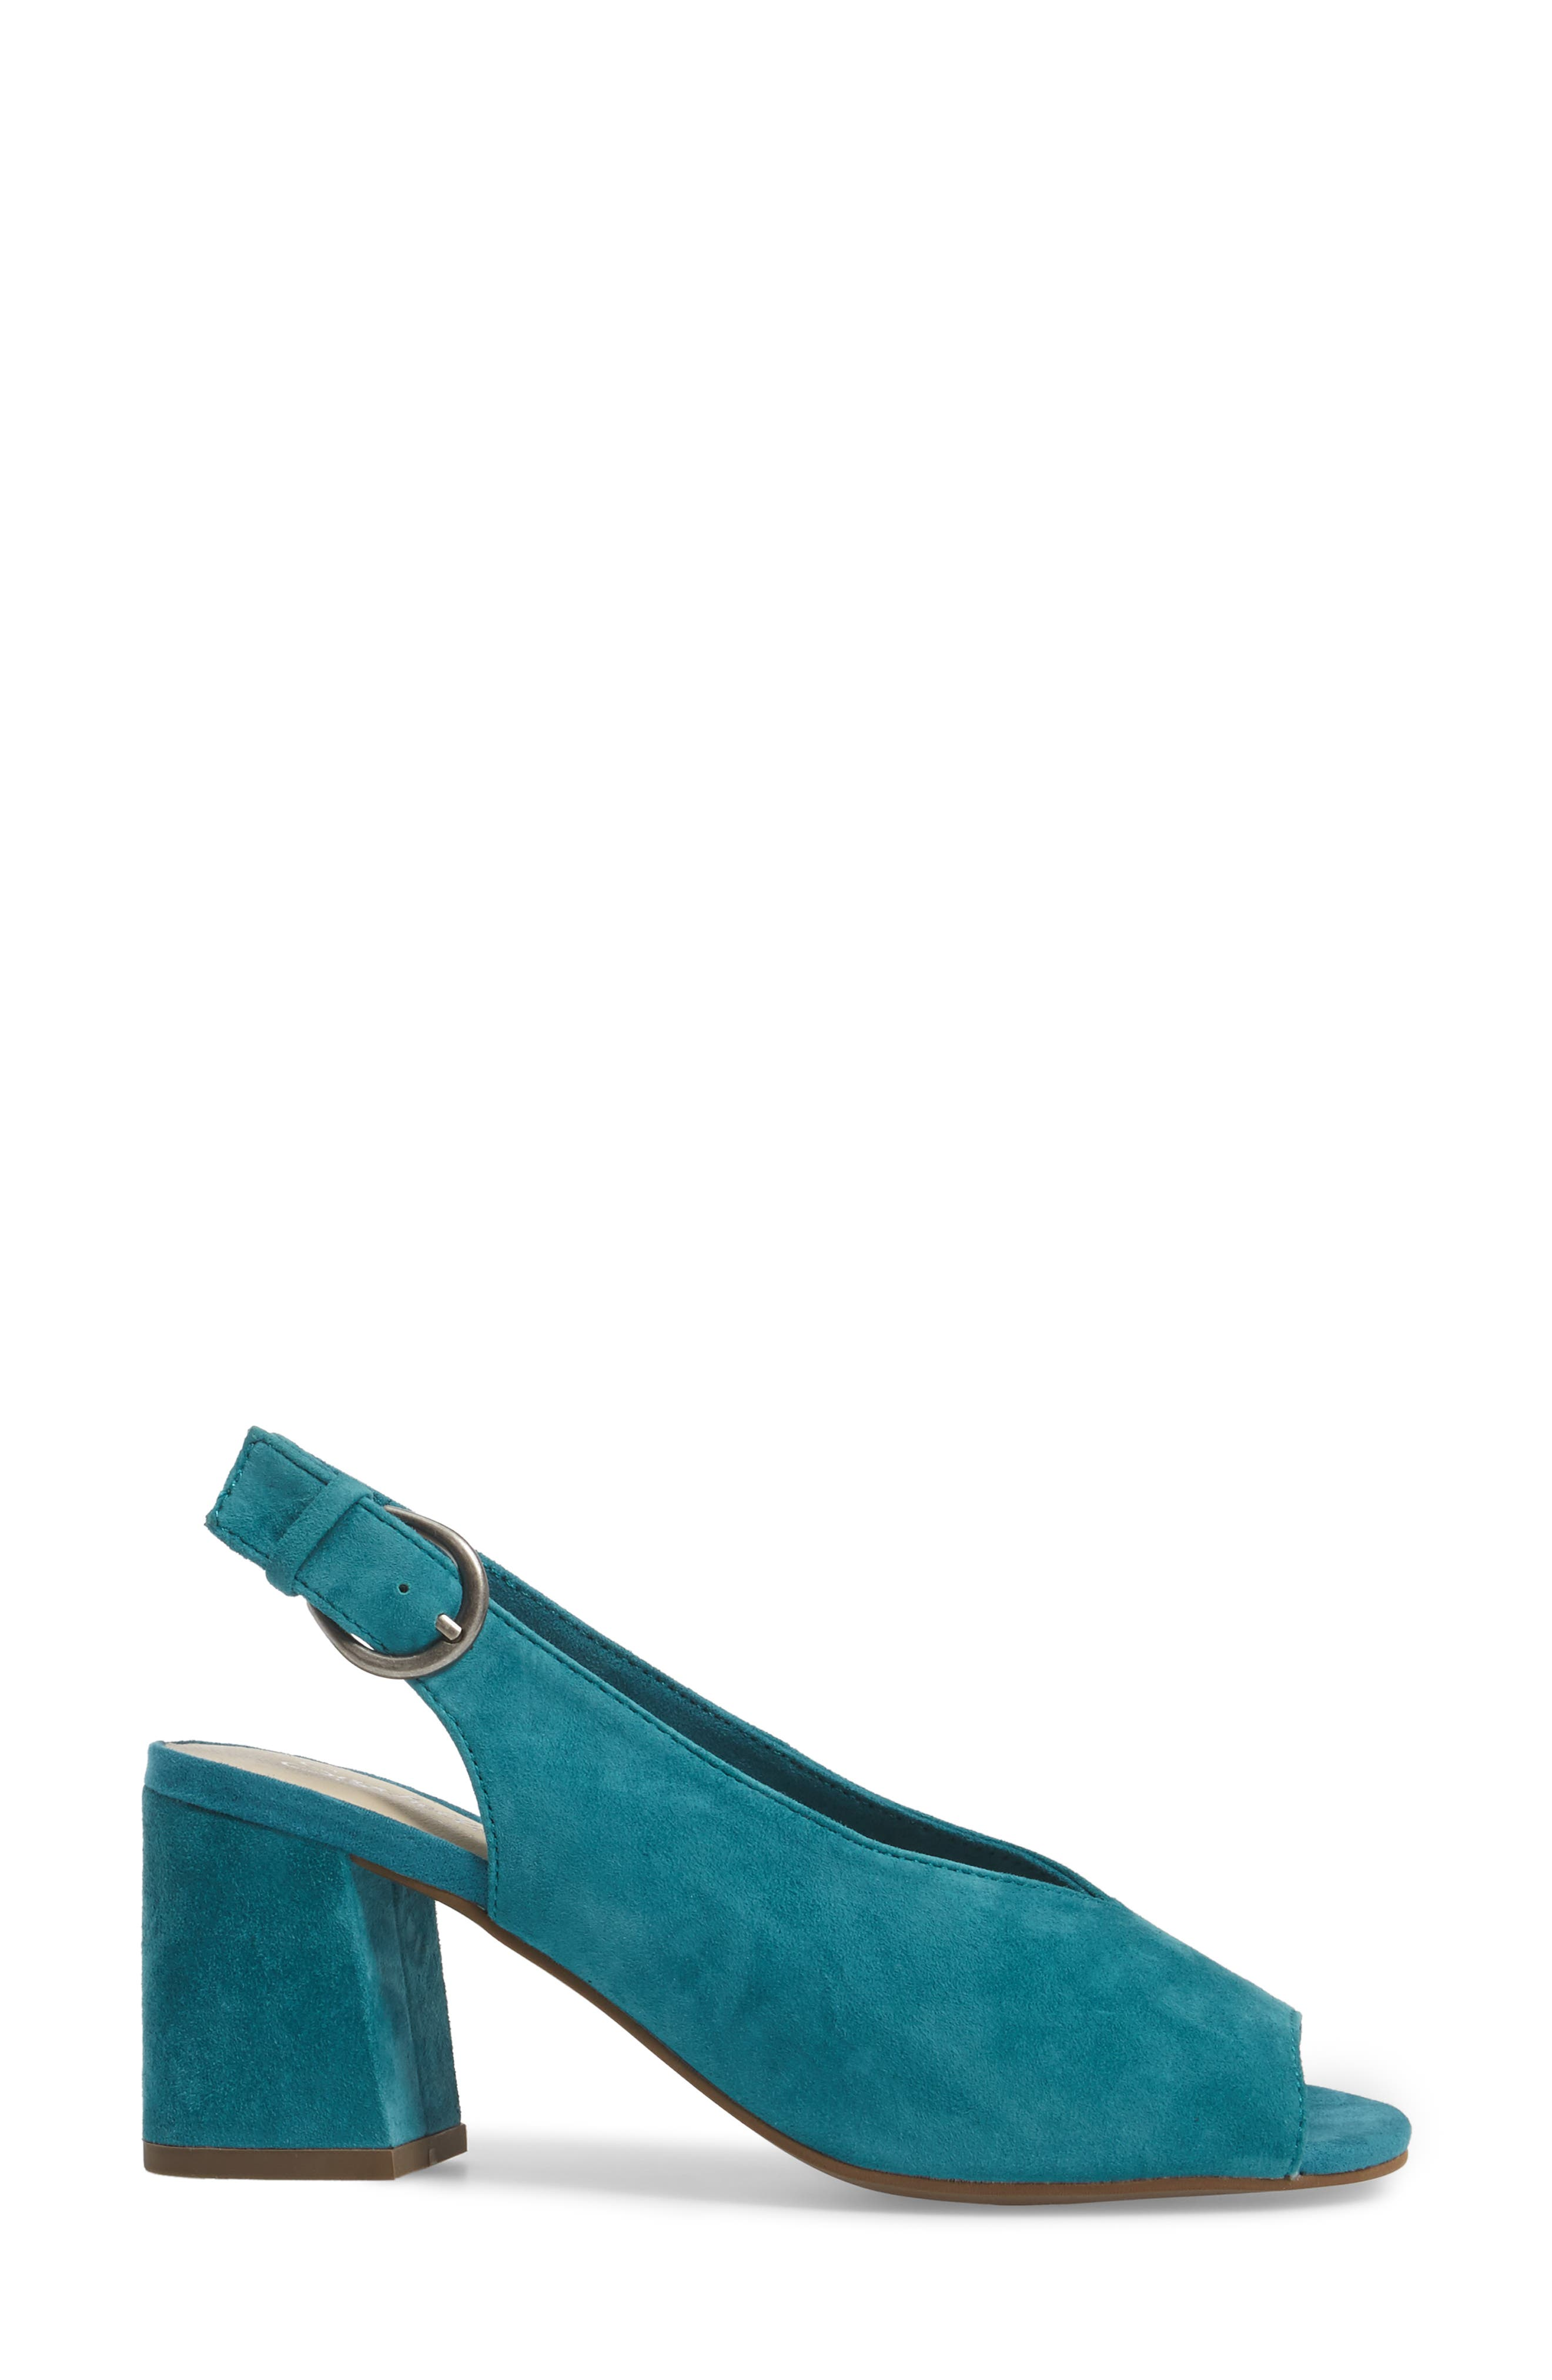 Alternate Image 3  - Seychelles Playwright Slingback Sandal (Women)